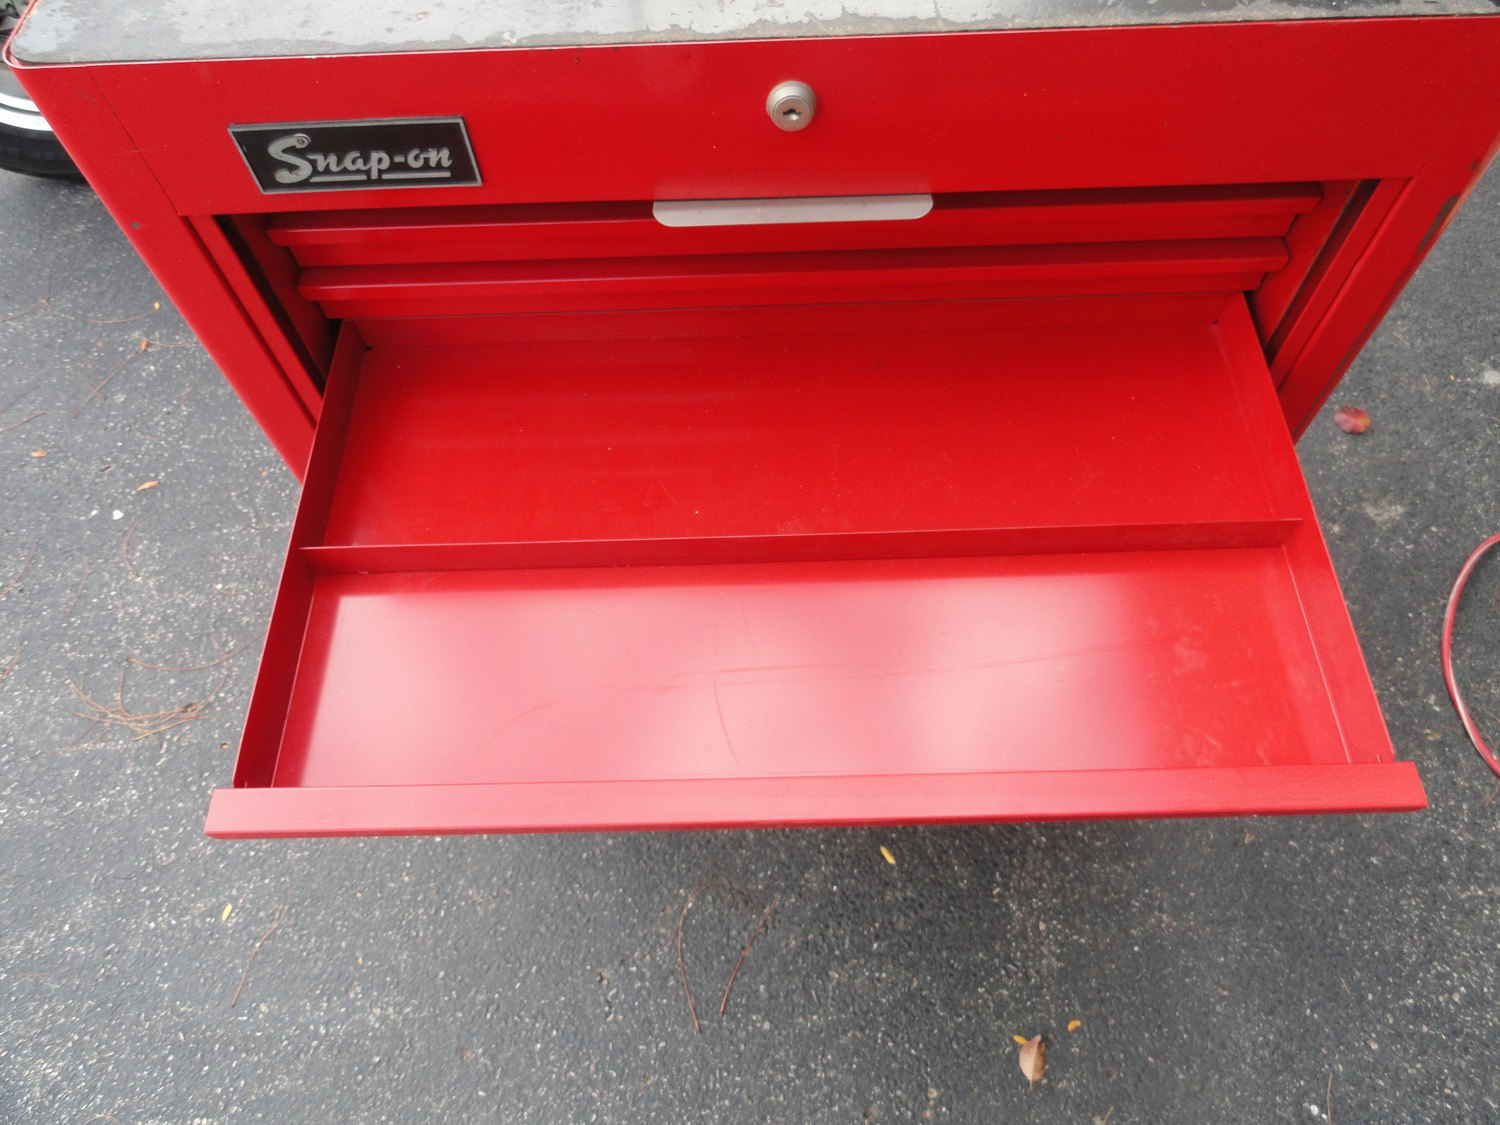 Mechanics 8 Drawer Tool Box Chest Roller Cabinet: Vtg Snap On KRA-300F Red 8 Drawer Tambour Door Rolling